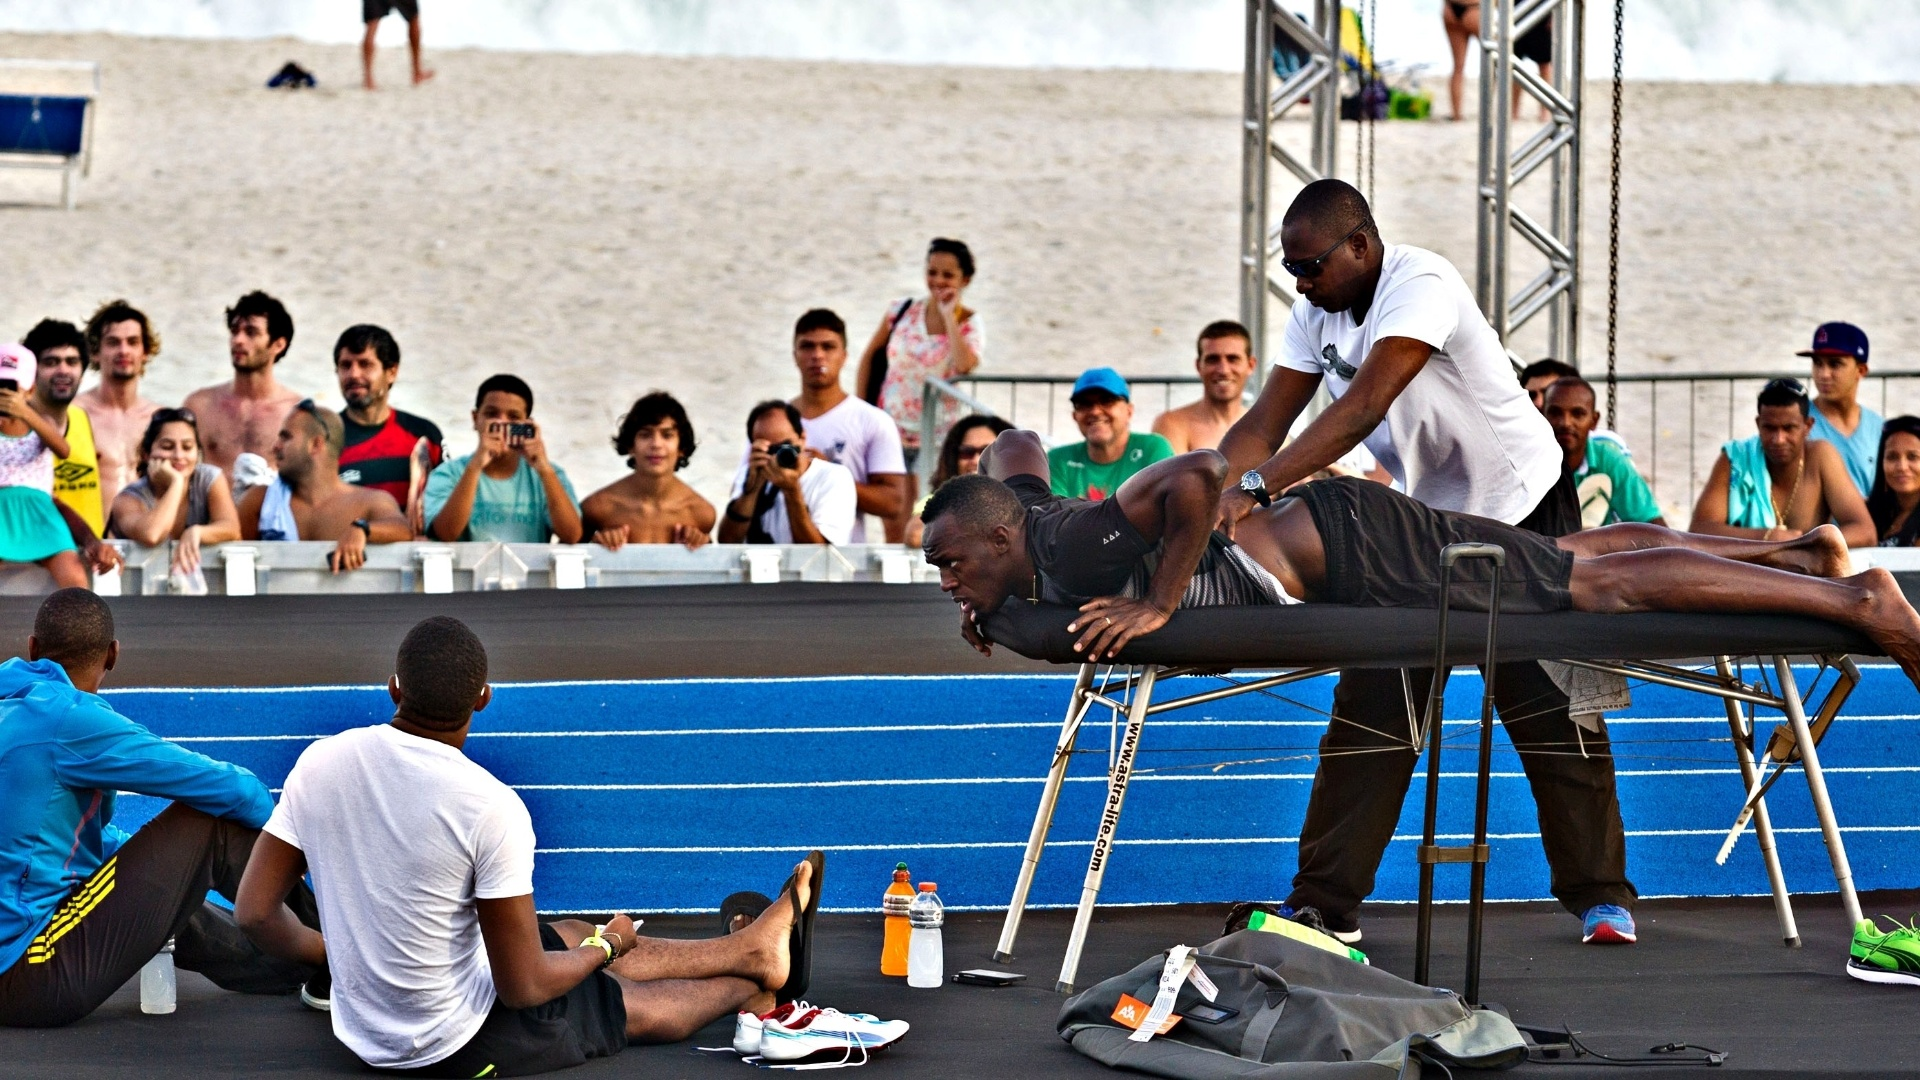 29.03.2013 - Bolt recebe massagem antes do incio do treino no Rio de Janeiro